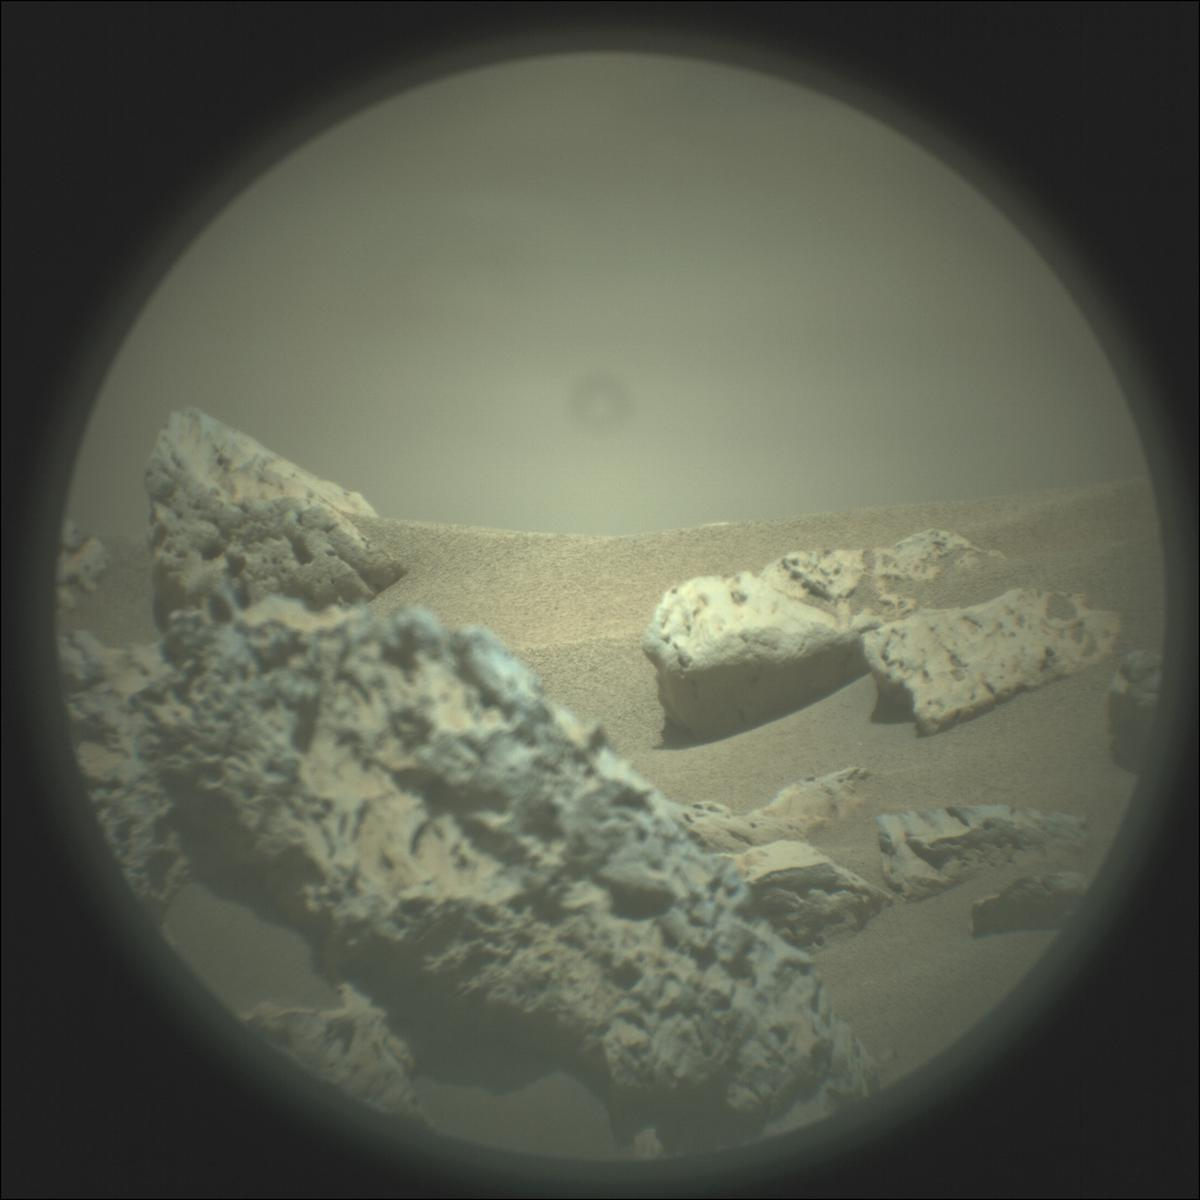 This image was taken by SUPERCAM_RMI onboard NASA's Mars rover Perseverance on Sol 115